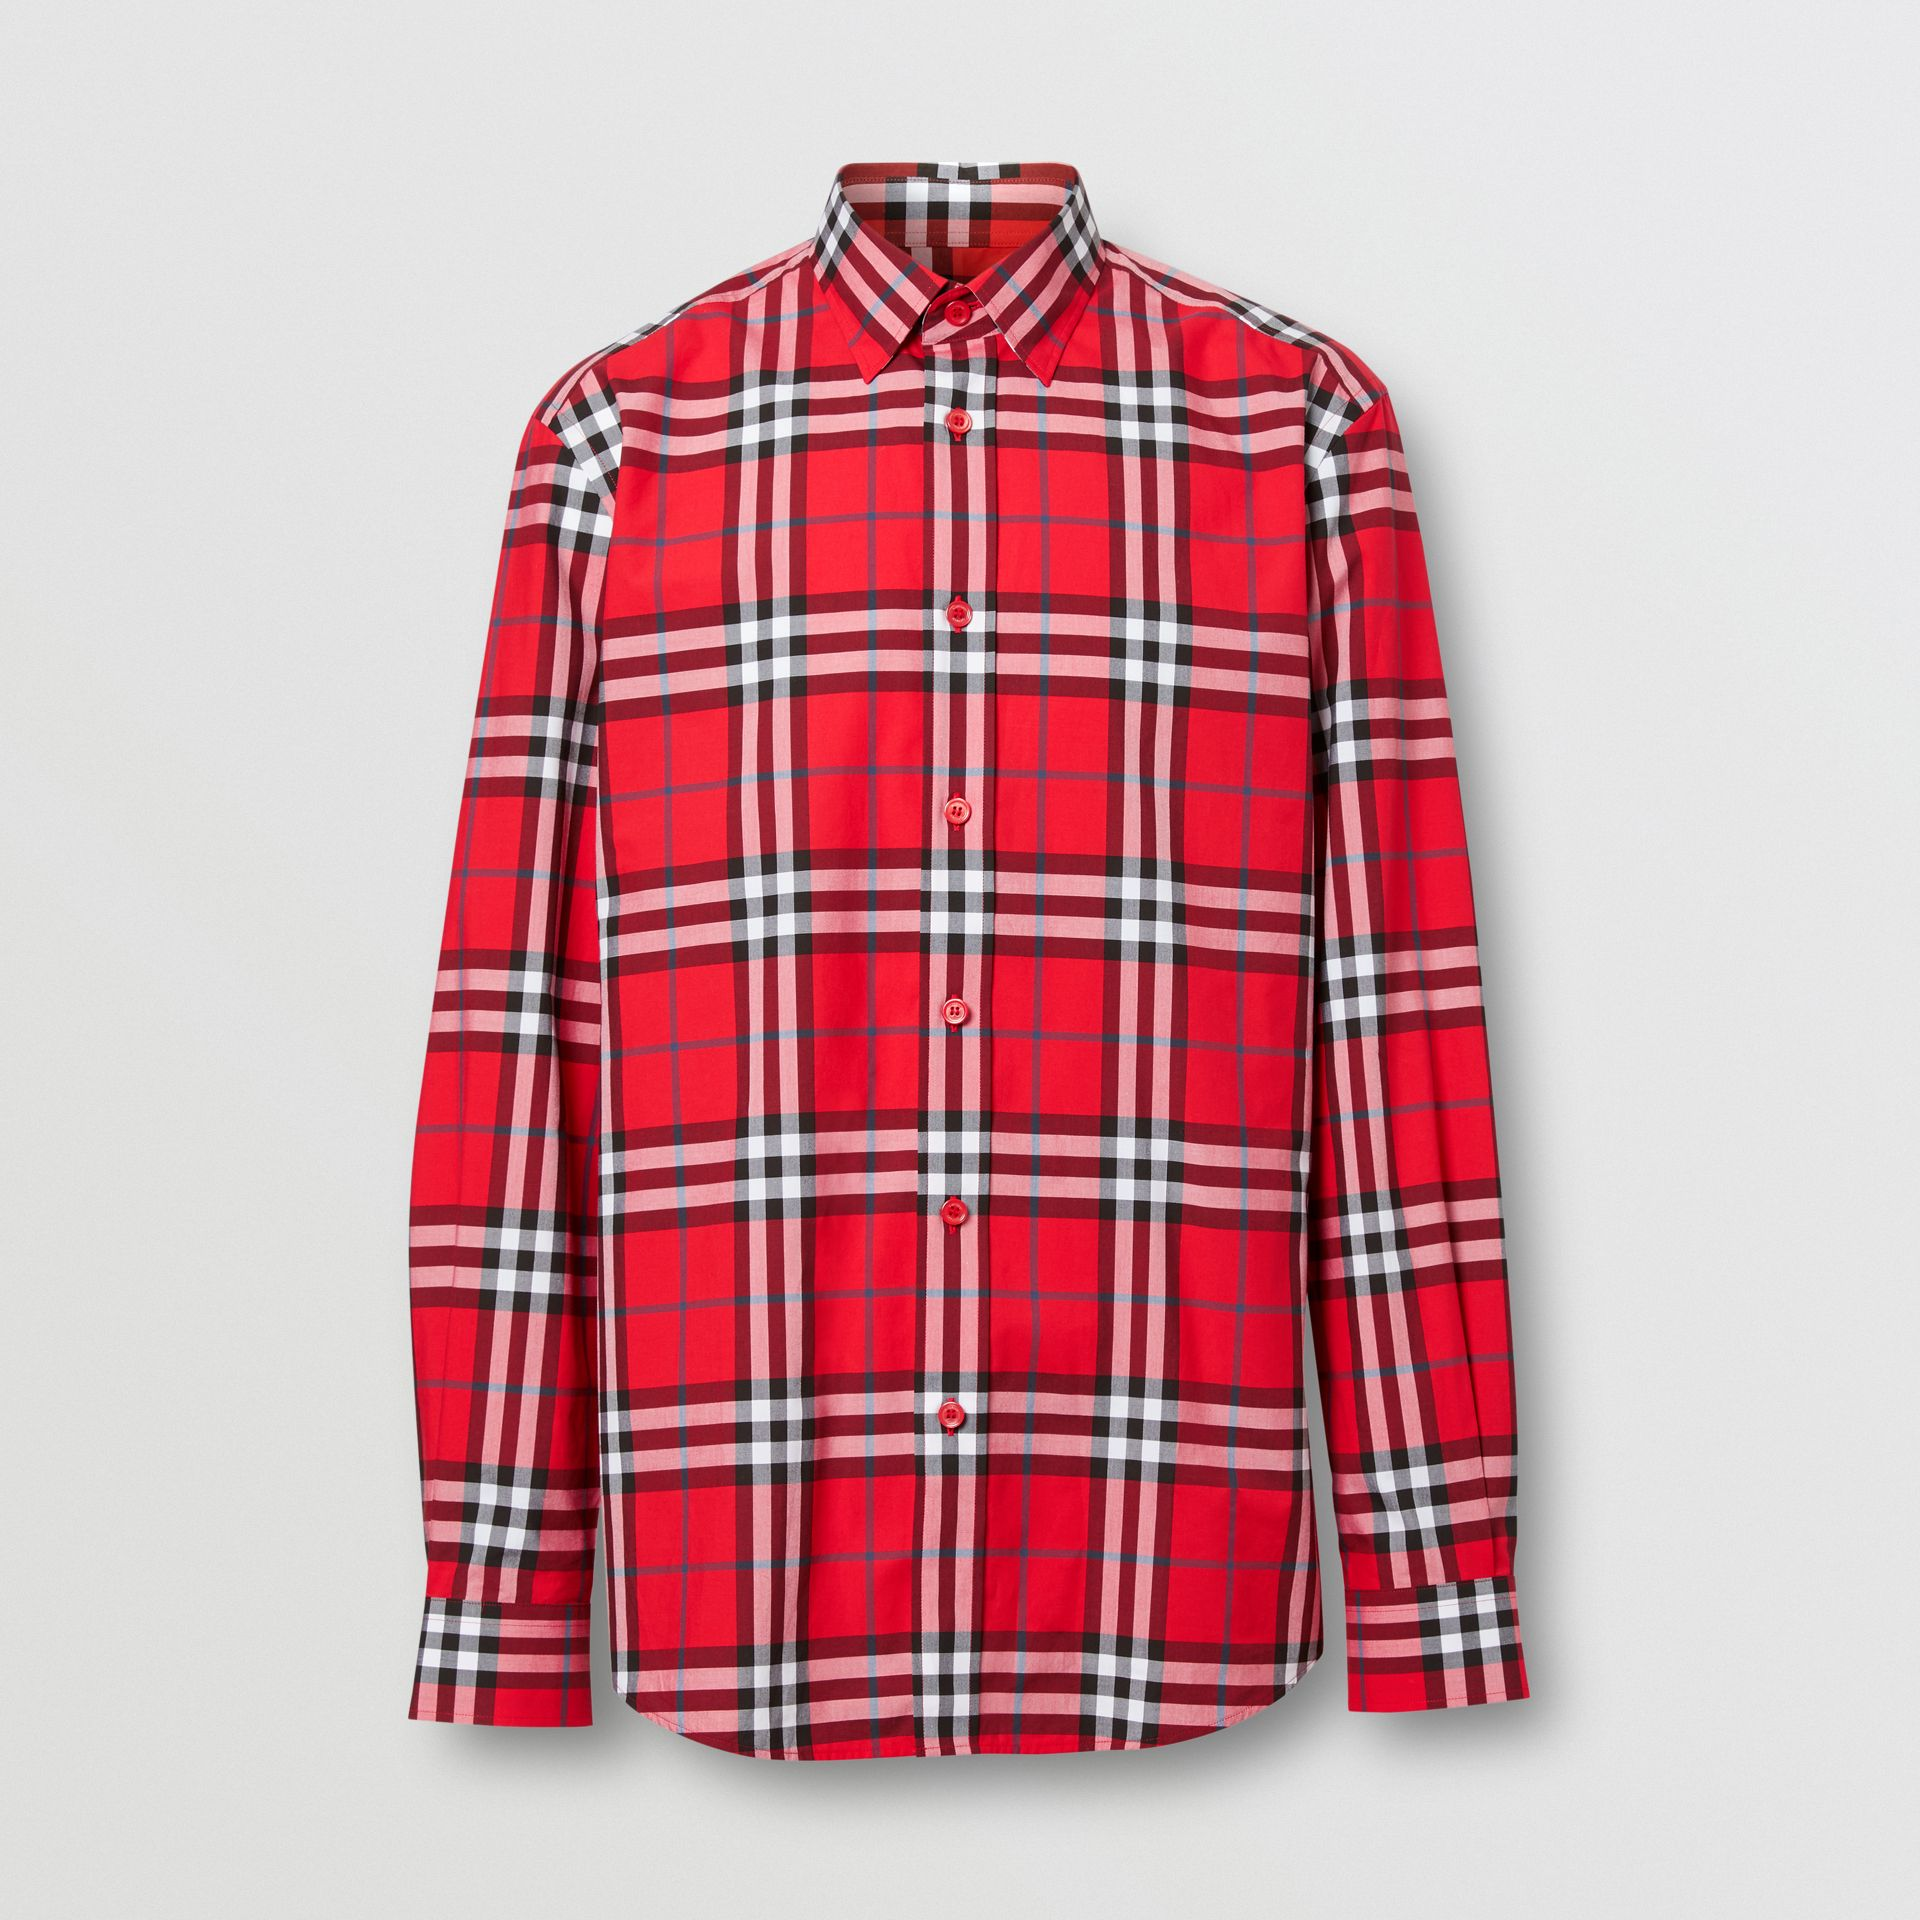 Vintage Check Cotton Poplin Shirt in Bright Red - Men | Burberry Hong Kong S.A.R - gallery image 3